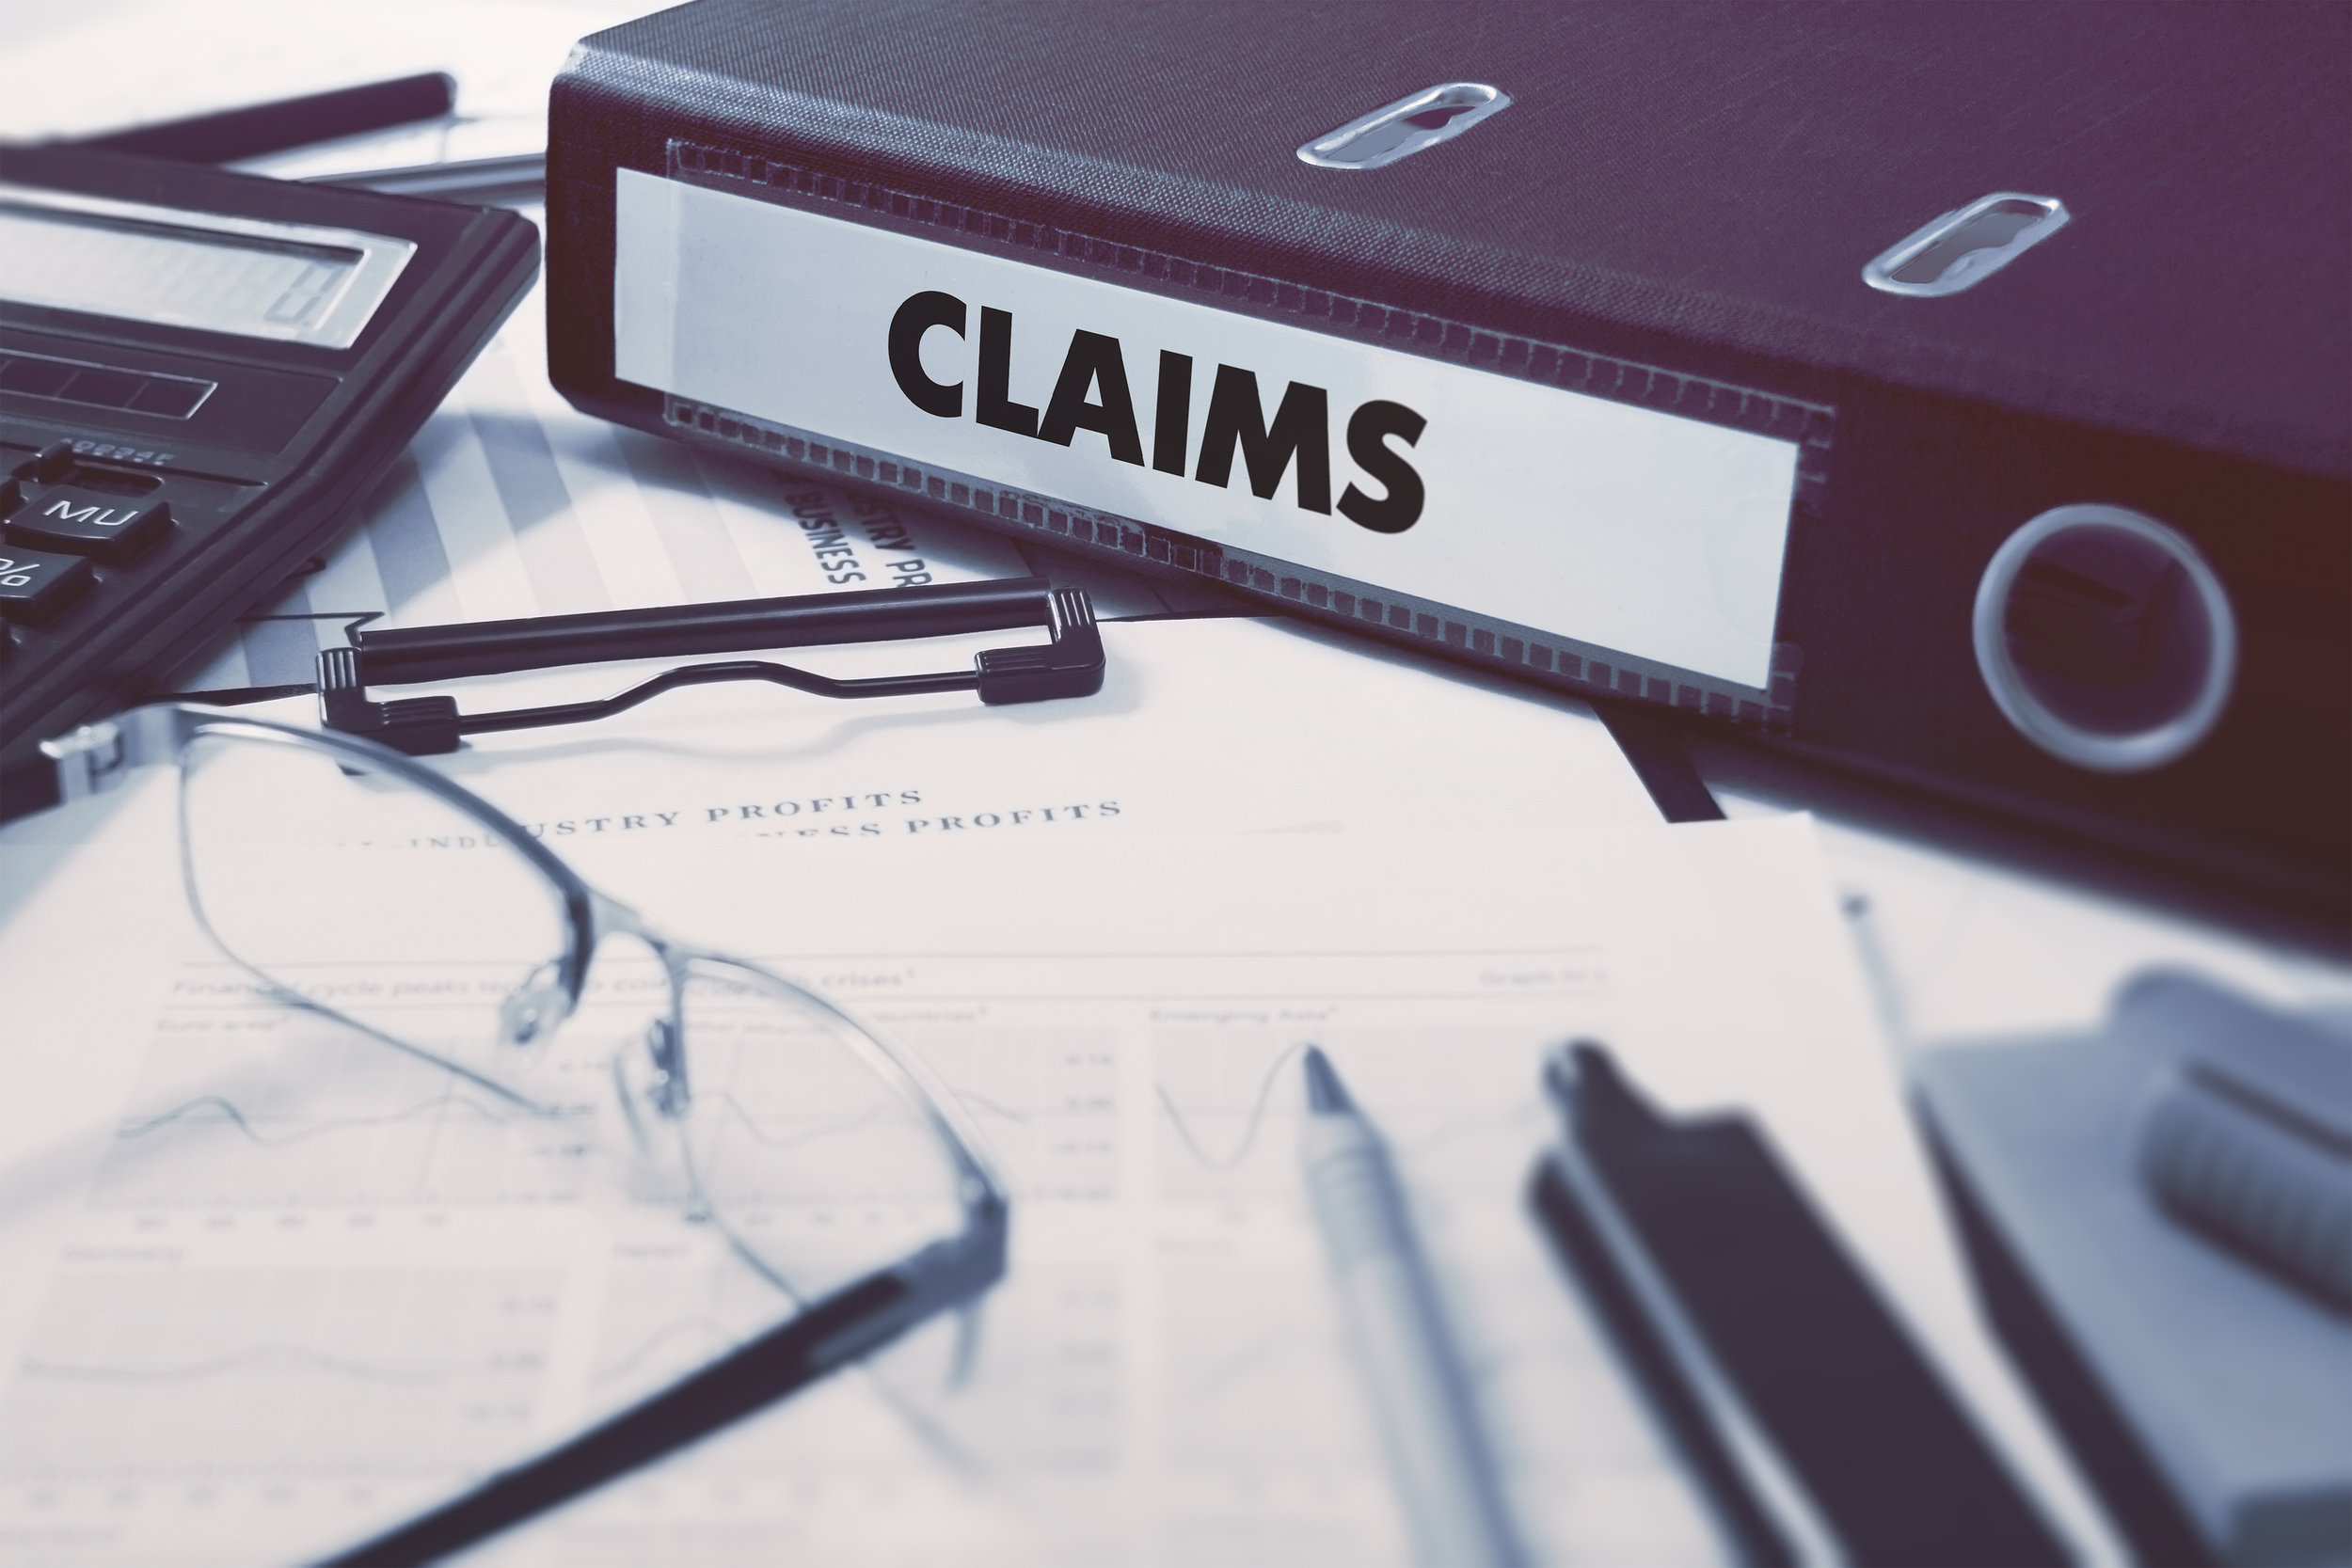 Should-I-file-a-personal-injury-claim-or-worker-compensation-claim.jpg